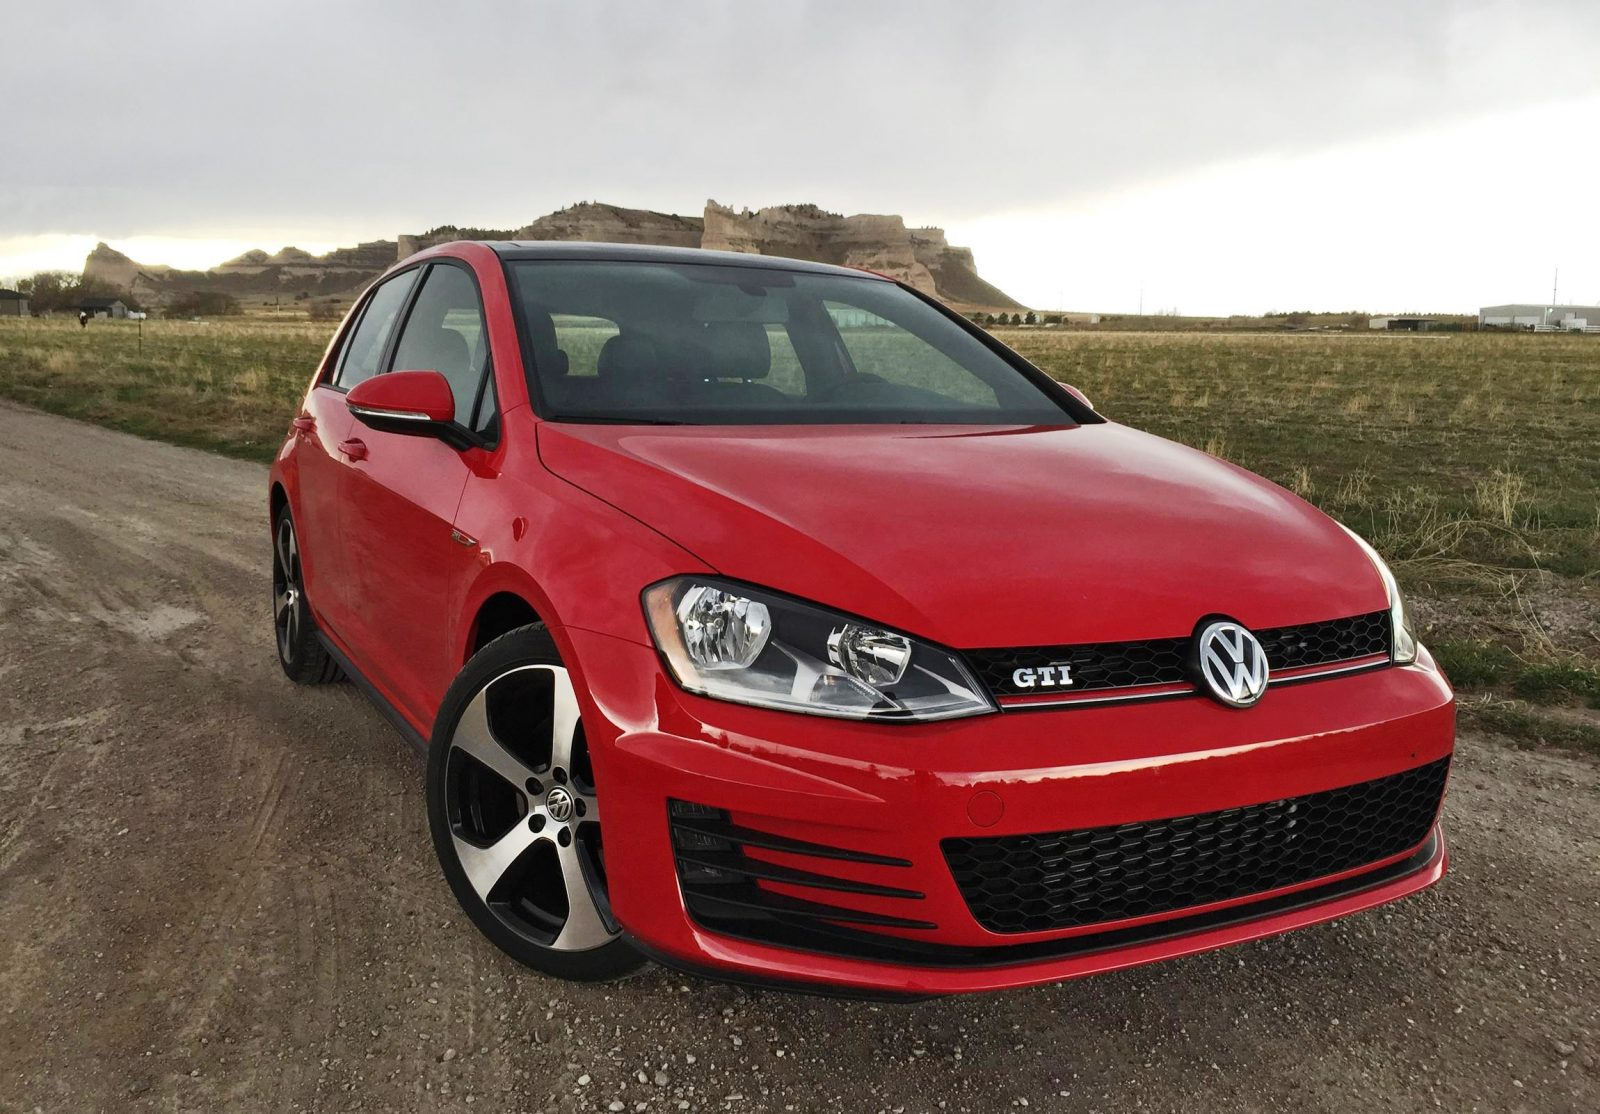 road test review 2016 volkswagen golf gti autobahn 6 speed by tim esterdahl car revs. Black Bedroom Furniture Sets. Home Design Ideas